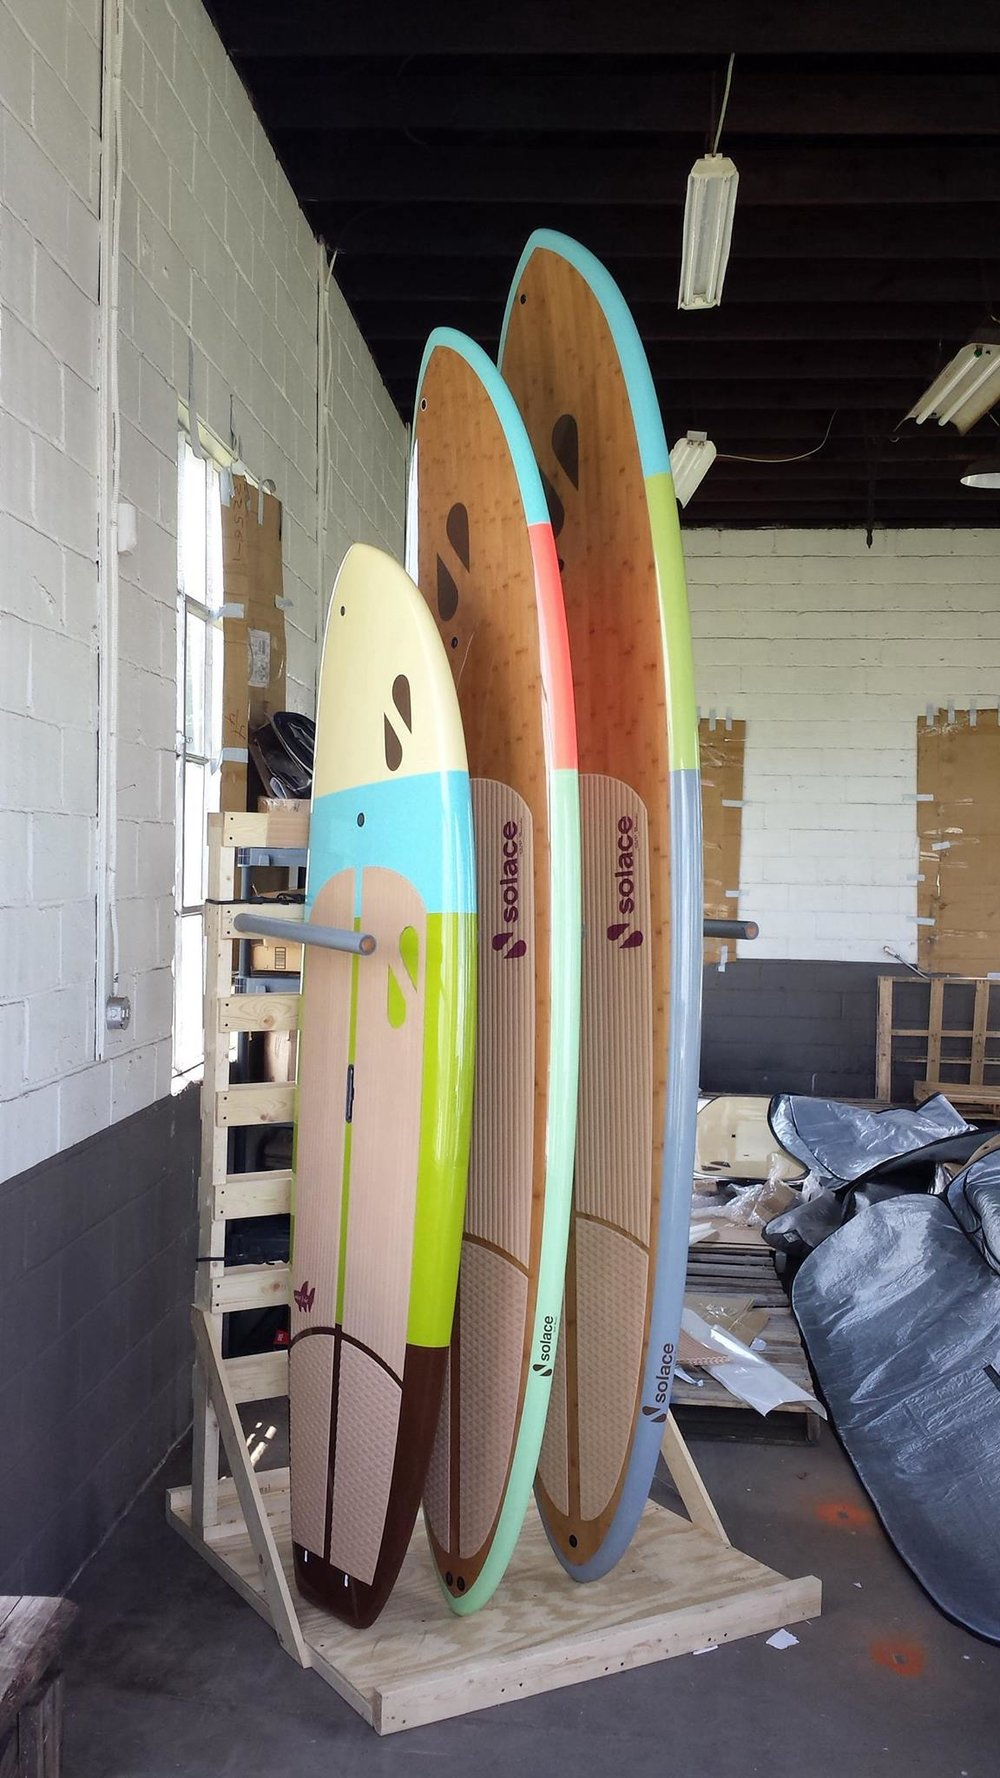 VH Surf 8.6 Model, Pura Vida 10.6 Model, Regatta 11.6 Model.  SUP Boards at Island Head Watersports